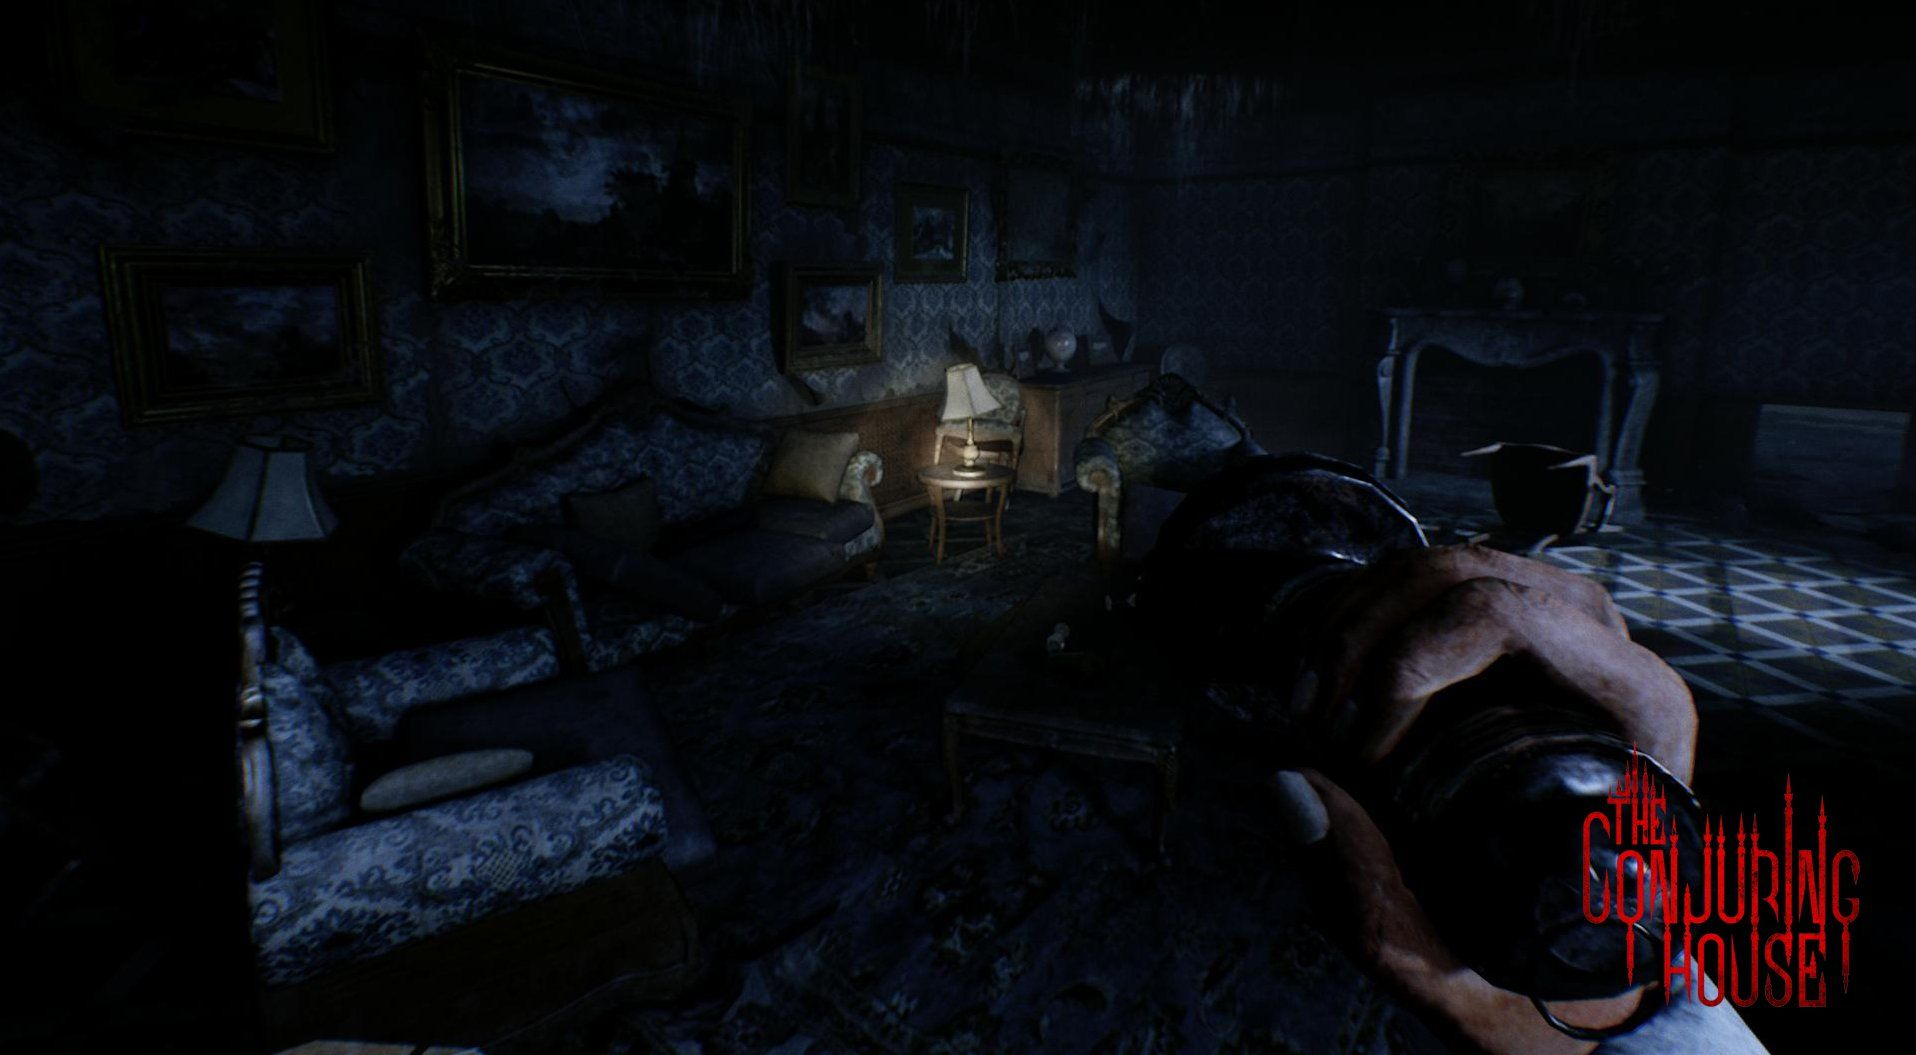 Charming The Conjuring House   Survival Horror (PC, PS4) #TheConjuringHouse #Terrror  #SurvivalHorror